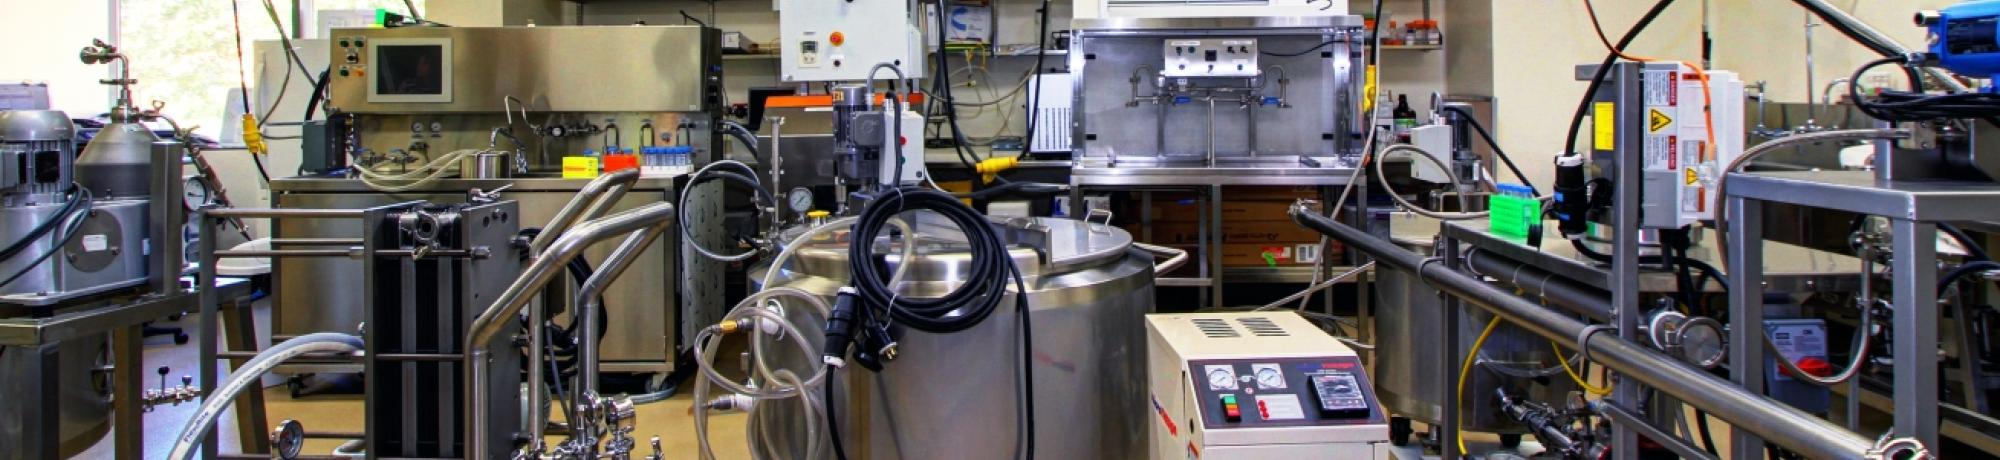 Milk Processing Laboratory